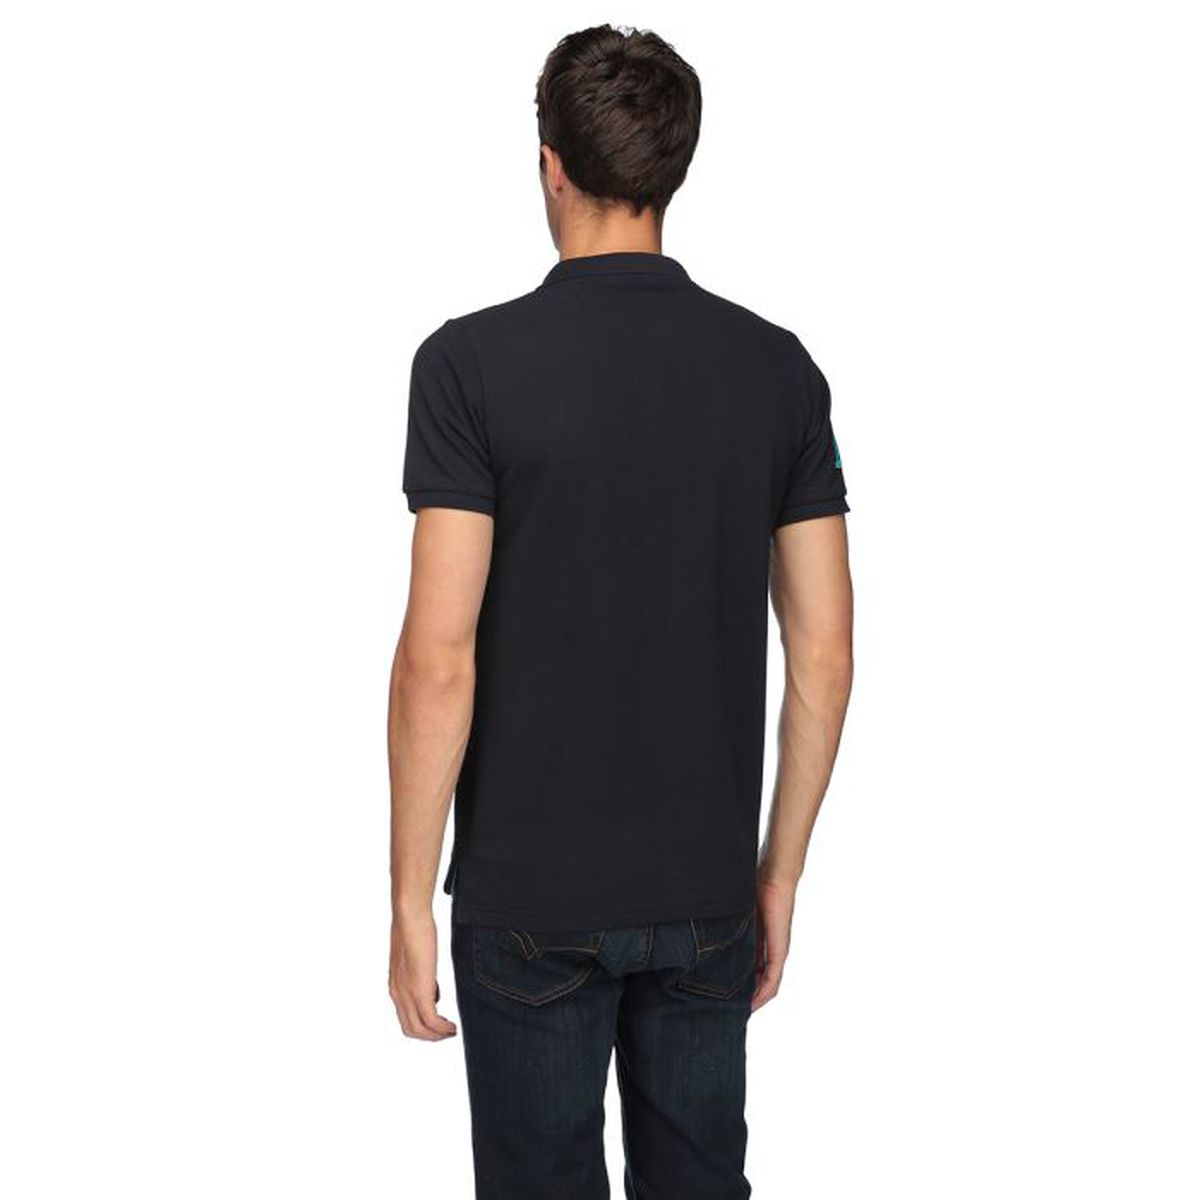 Achat Ferry Marine Polo Frank Cdiscount Homme Vente n8wk0OP